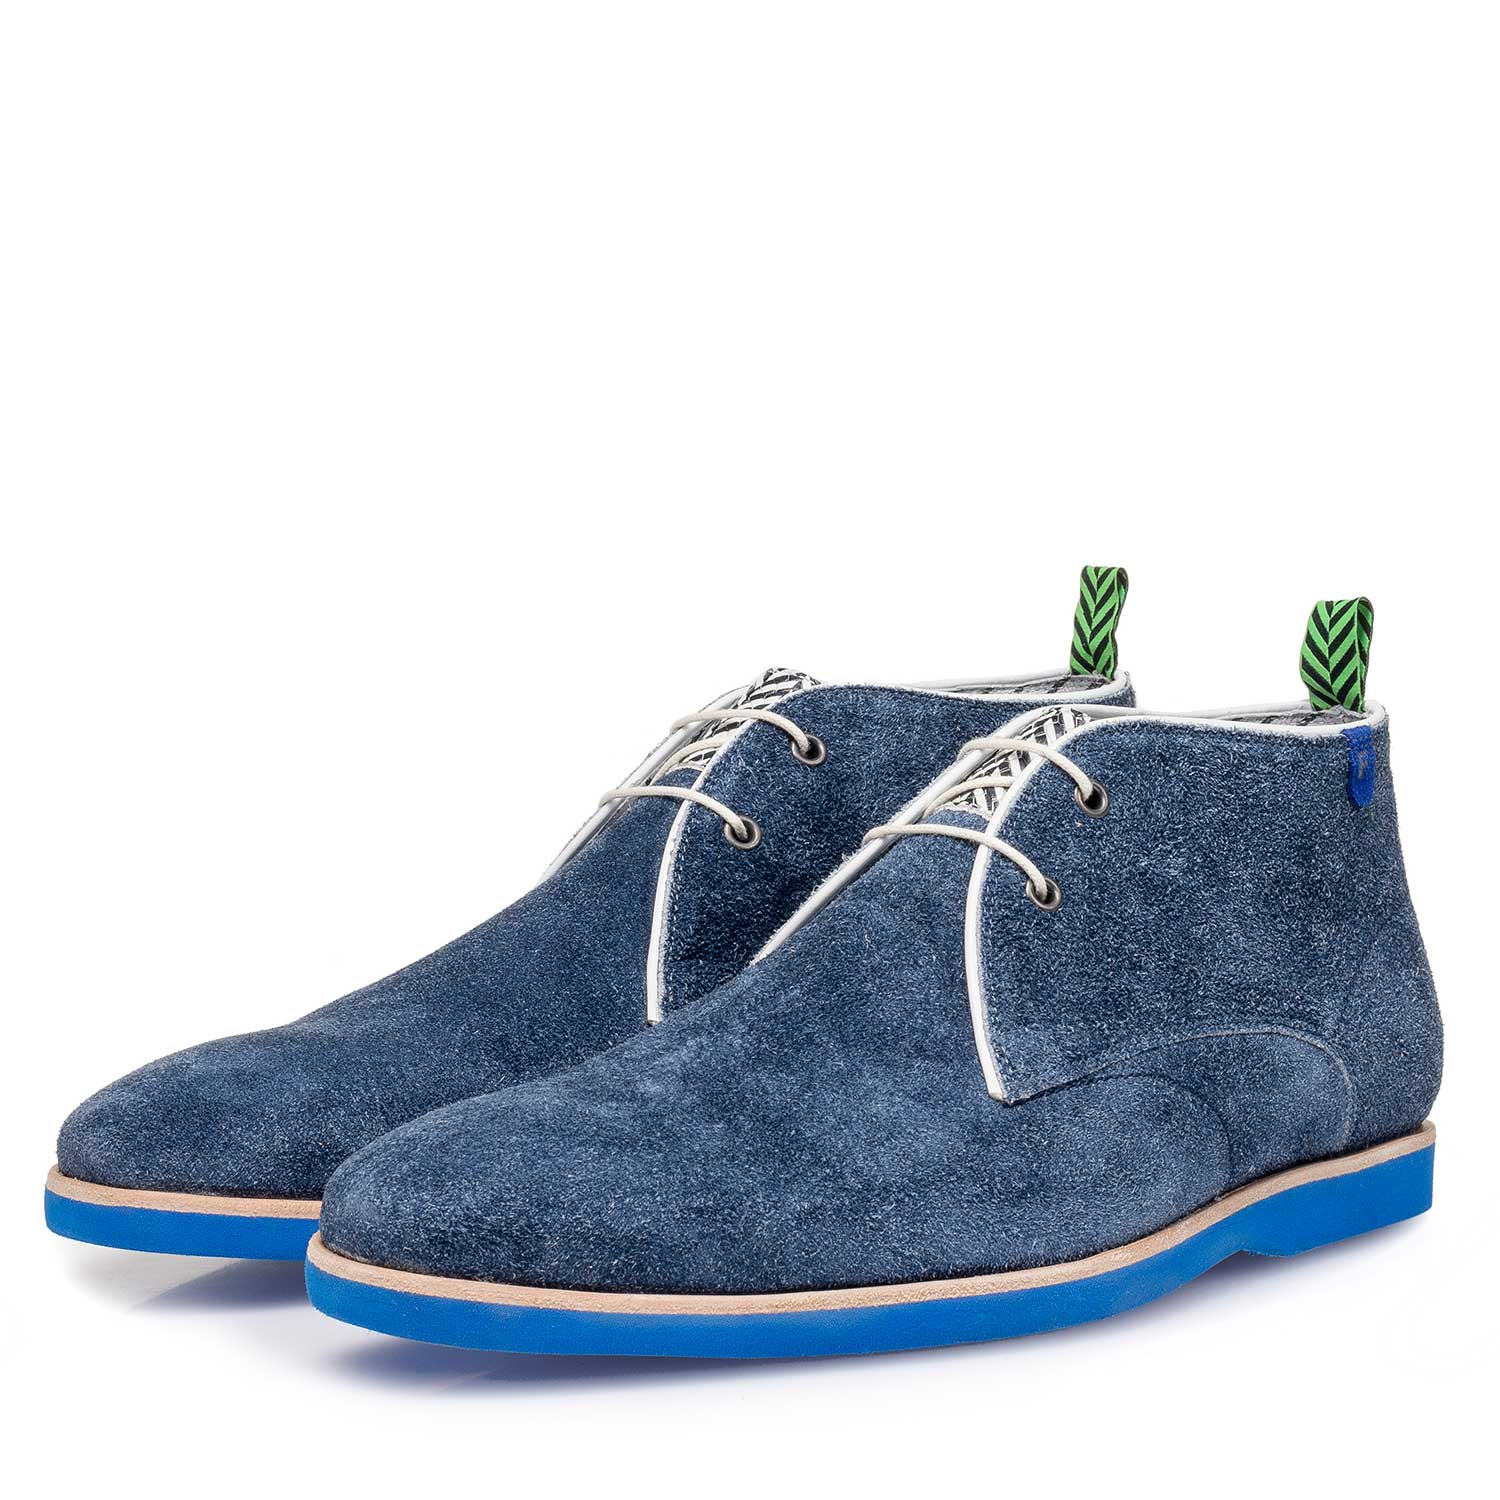 10014/06 - Blue rough suede leather lace boot